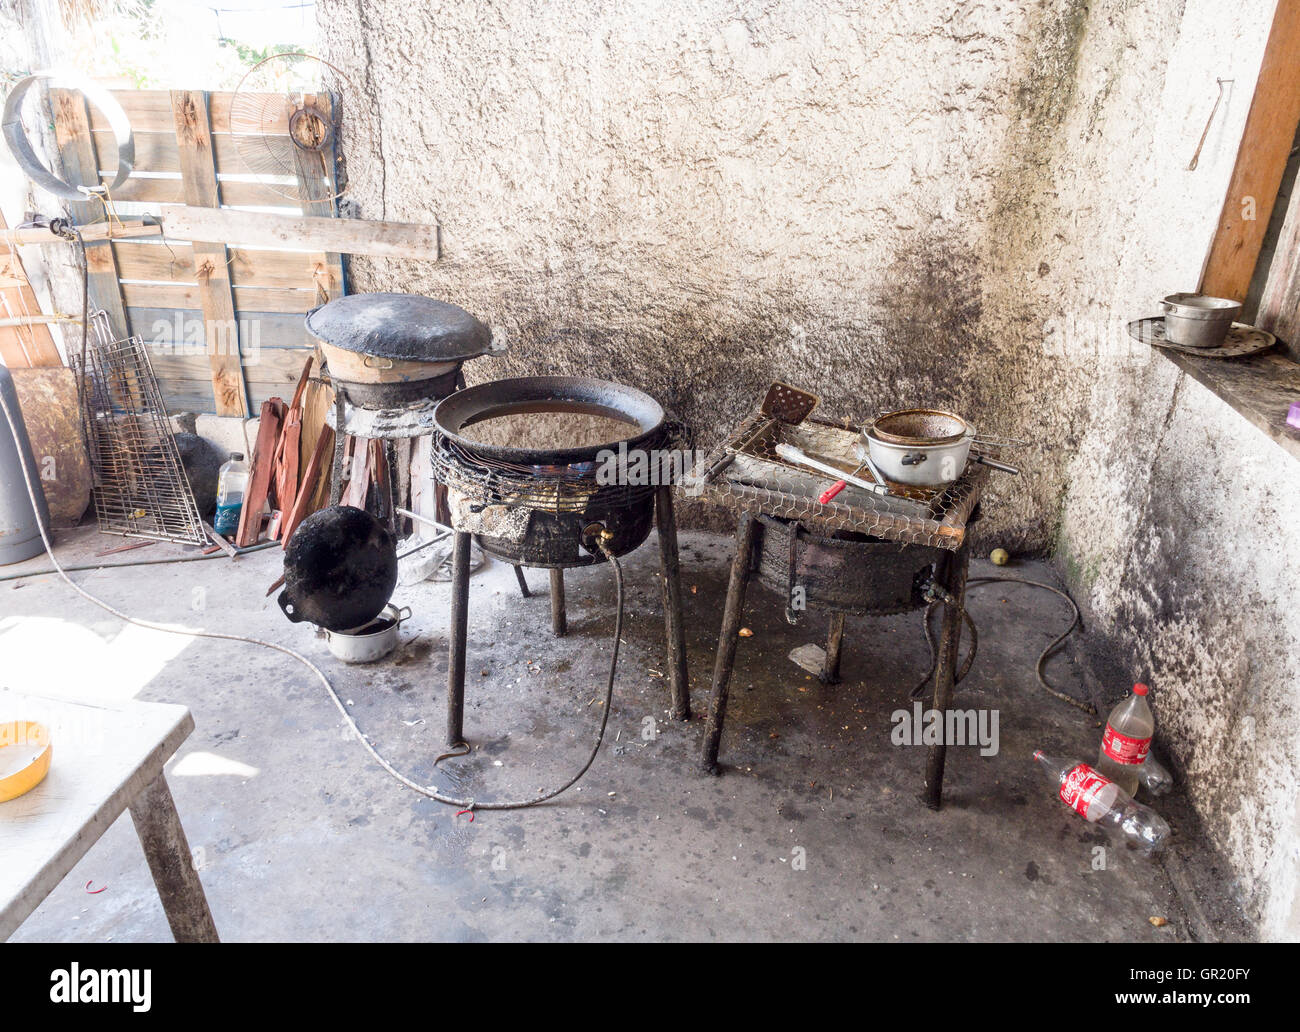 Getting Ready to Cook: Heating the Oil. A propane burner heats a large vat of oil in a rough kitchen on the harbour. - Stock Image